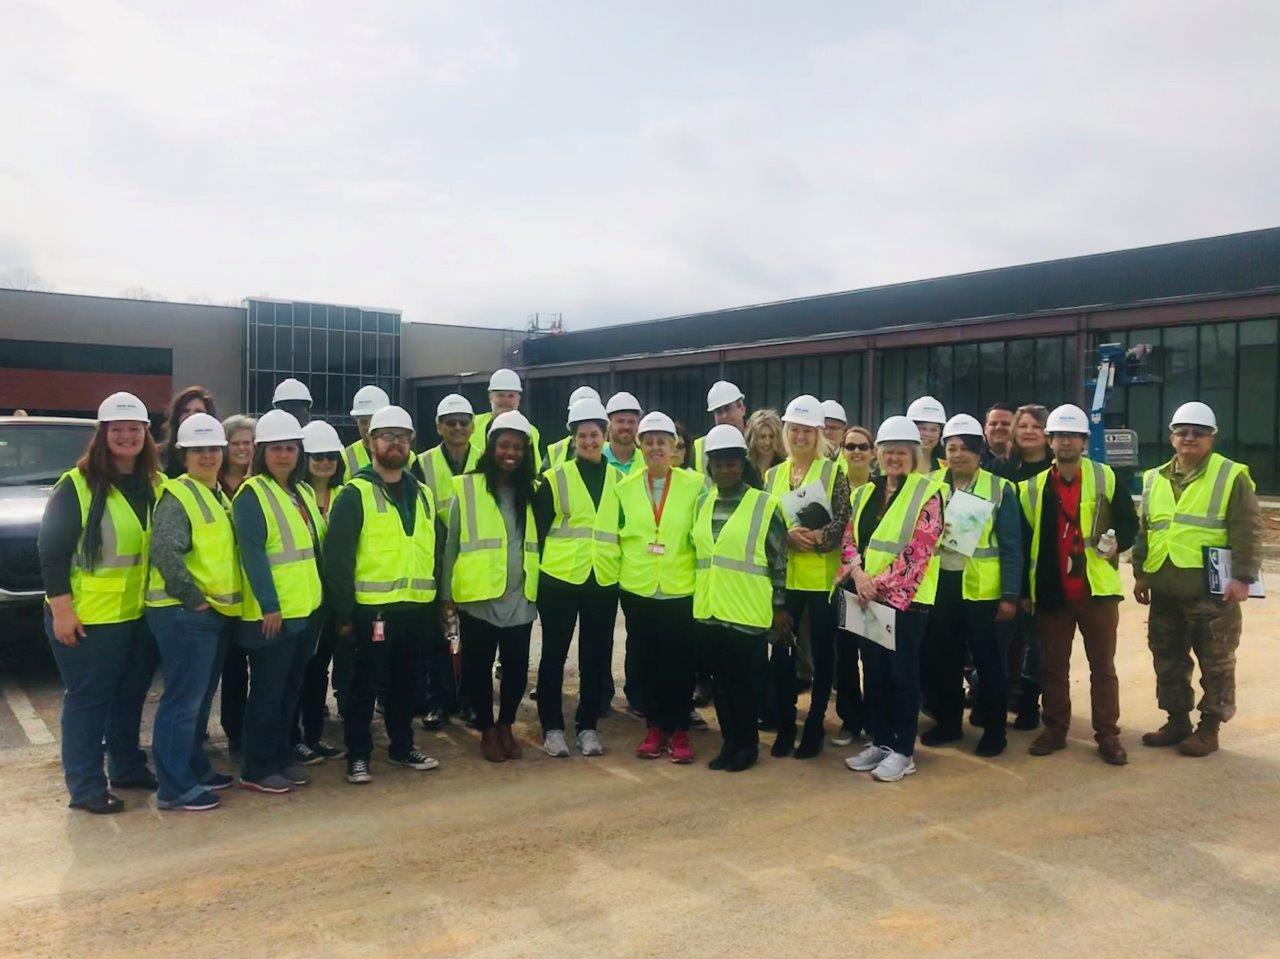 Career, Technical, and Agricultural Education (CTAE) teachers from Dalton Public Schools recently toured the new expansion at Georgia Northwestern Technical College's Whitfield Murray Campus.""